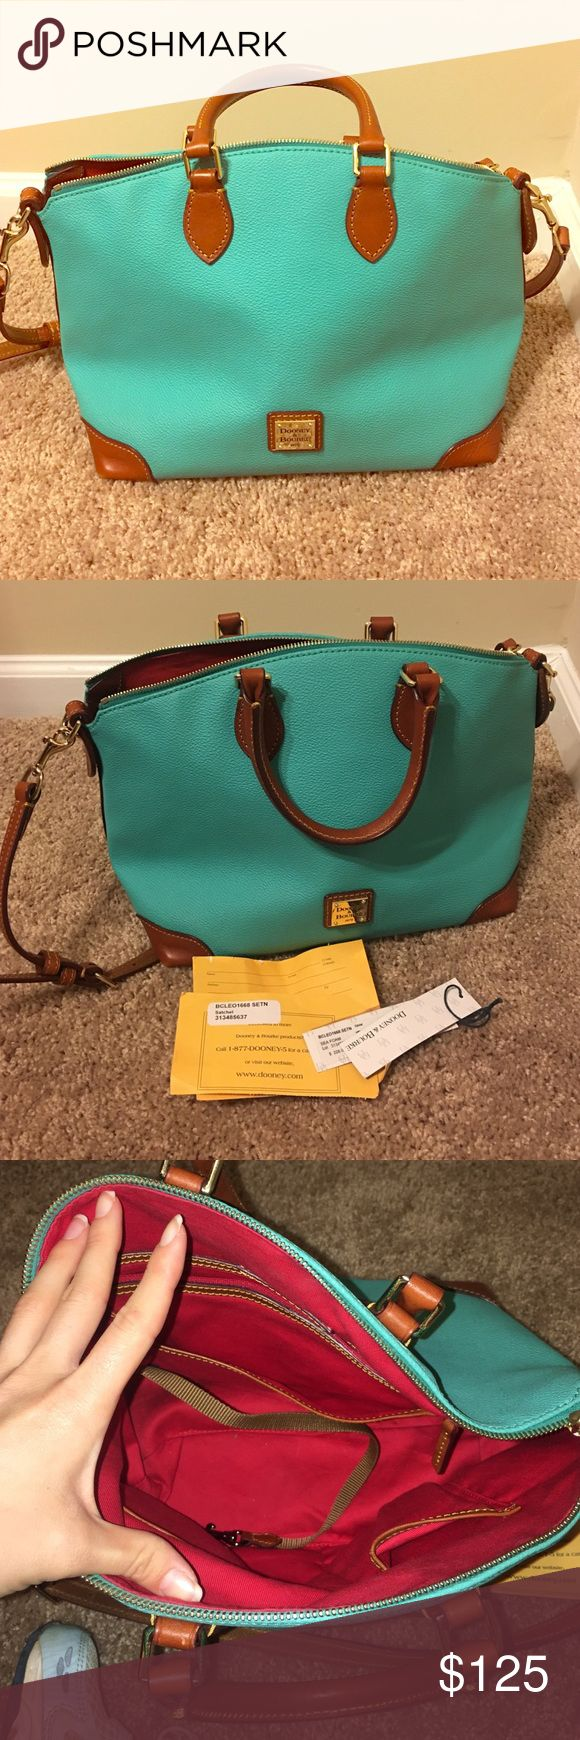 """Dooney and Bourke Seafoam Handbag😍 Literally a brand new purse. This is a pretty big purse, tried to capture size as best a possible. I'd say about 8"""" tall 12""""wide. Beautiful classic red inside. I bought this for myself and my mom bought me the exact one for Christmas. All tags and registration number included! Bags Shoulder Bags"""